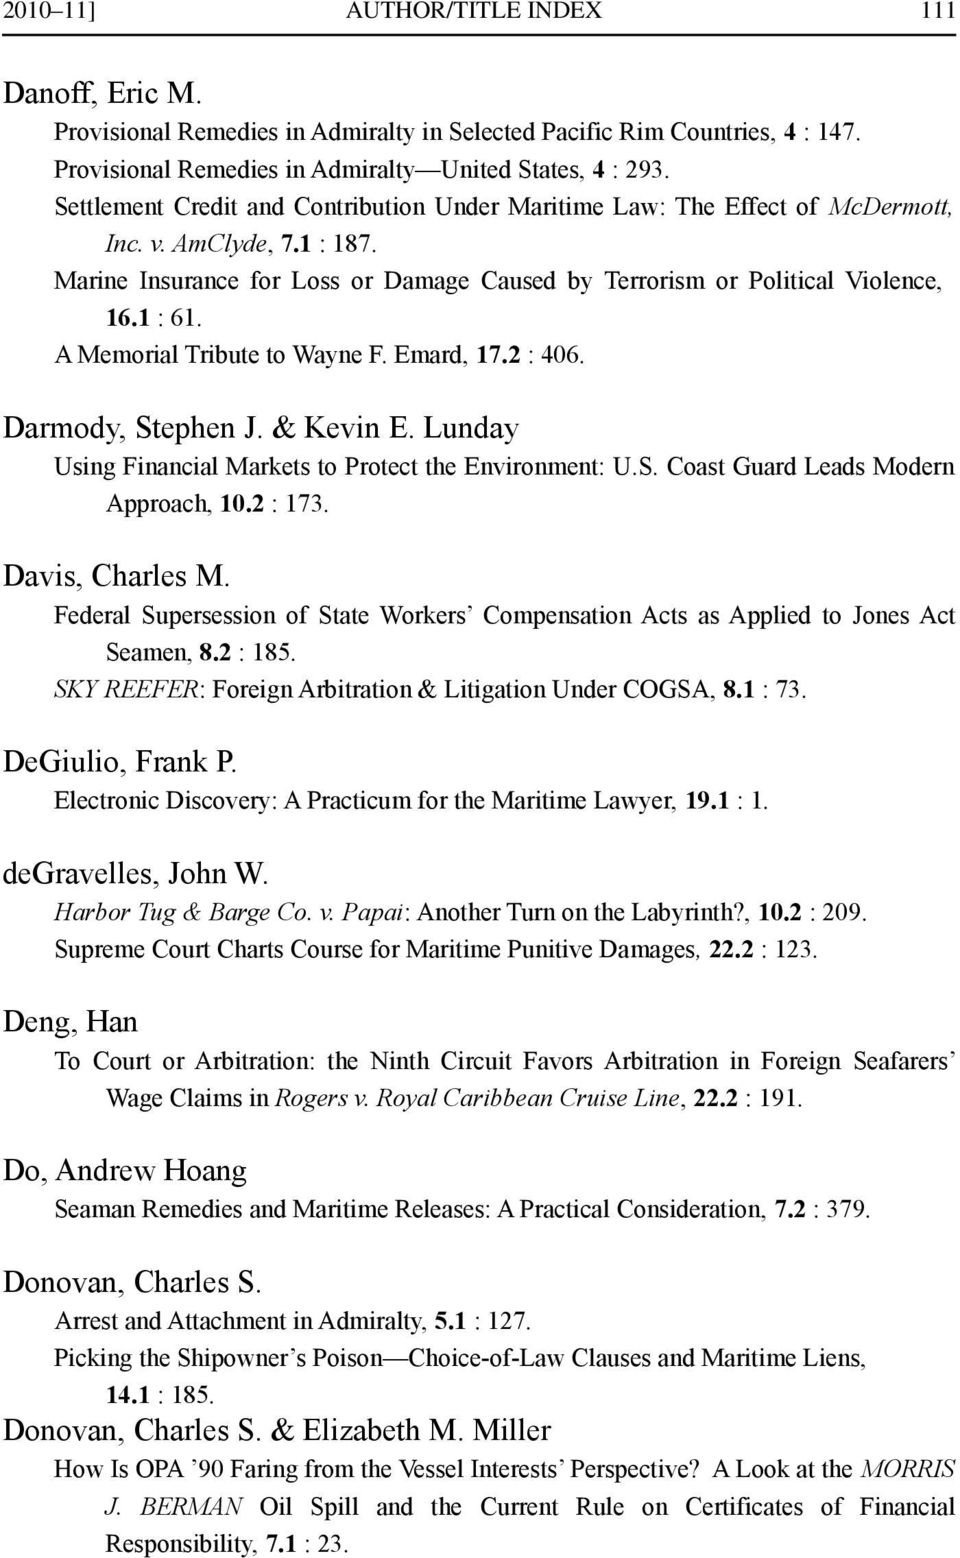 A Memorial Tribute to Wayne F. Emard, 17.2 : 406. Darmody, Stephen J. & Kevin E. Lunday Using Financial Markets to Protect the Environment: U.S. Coast Guard Leads Modern Approach, 10.2 : 173.